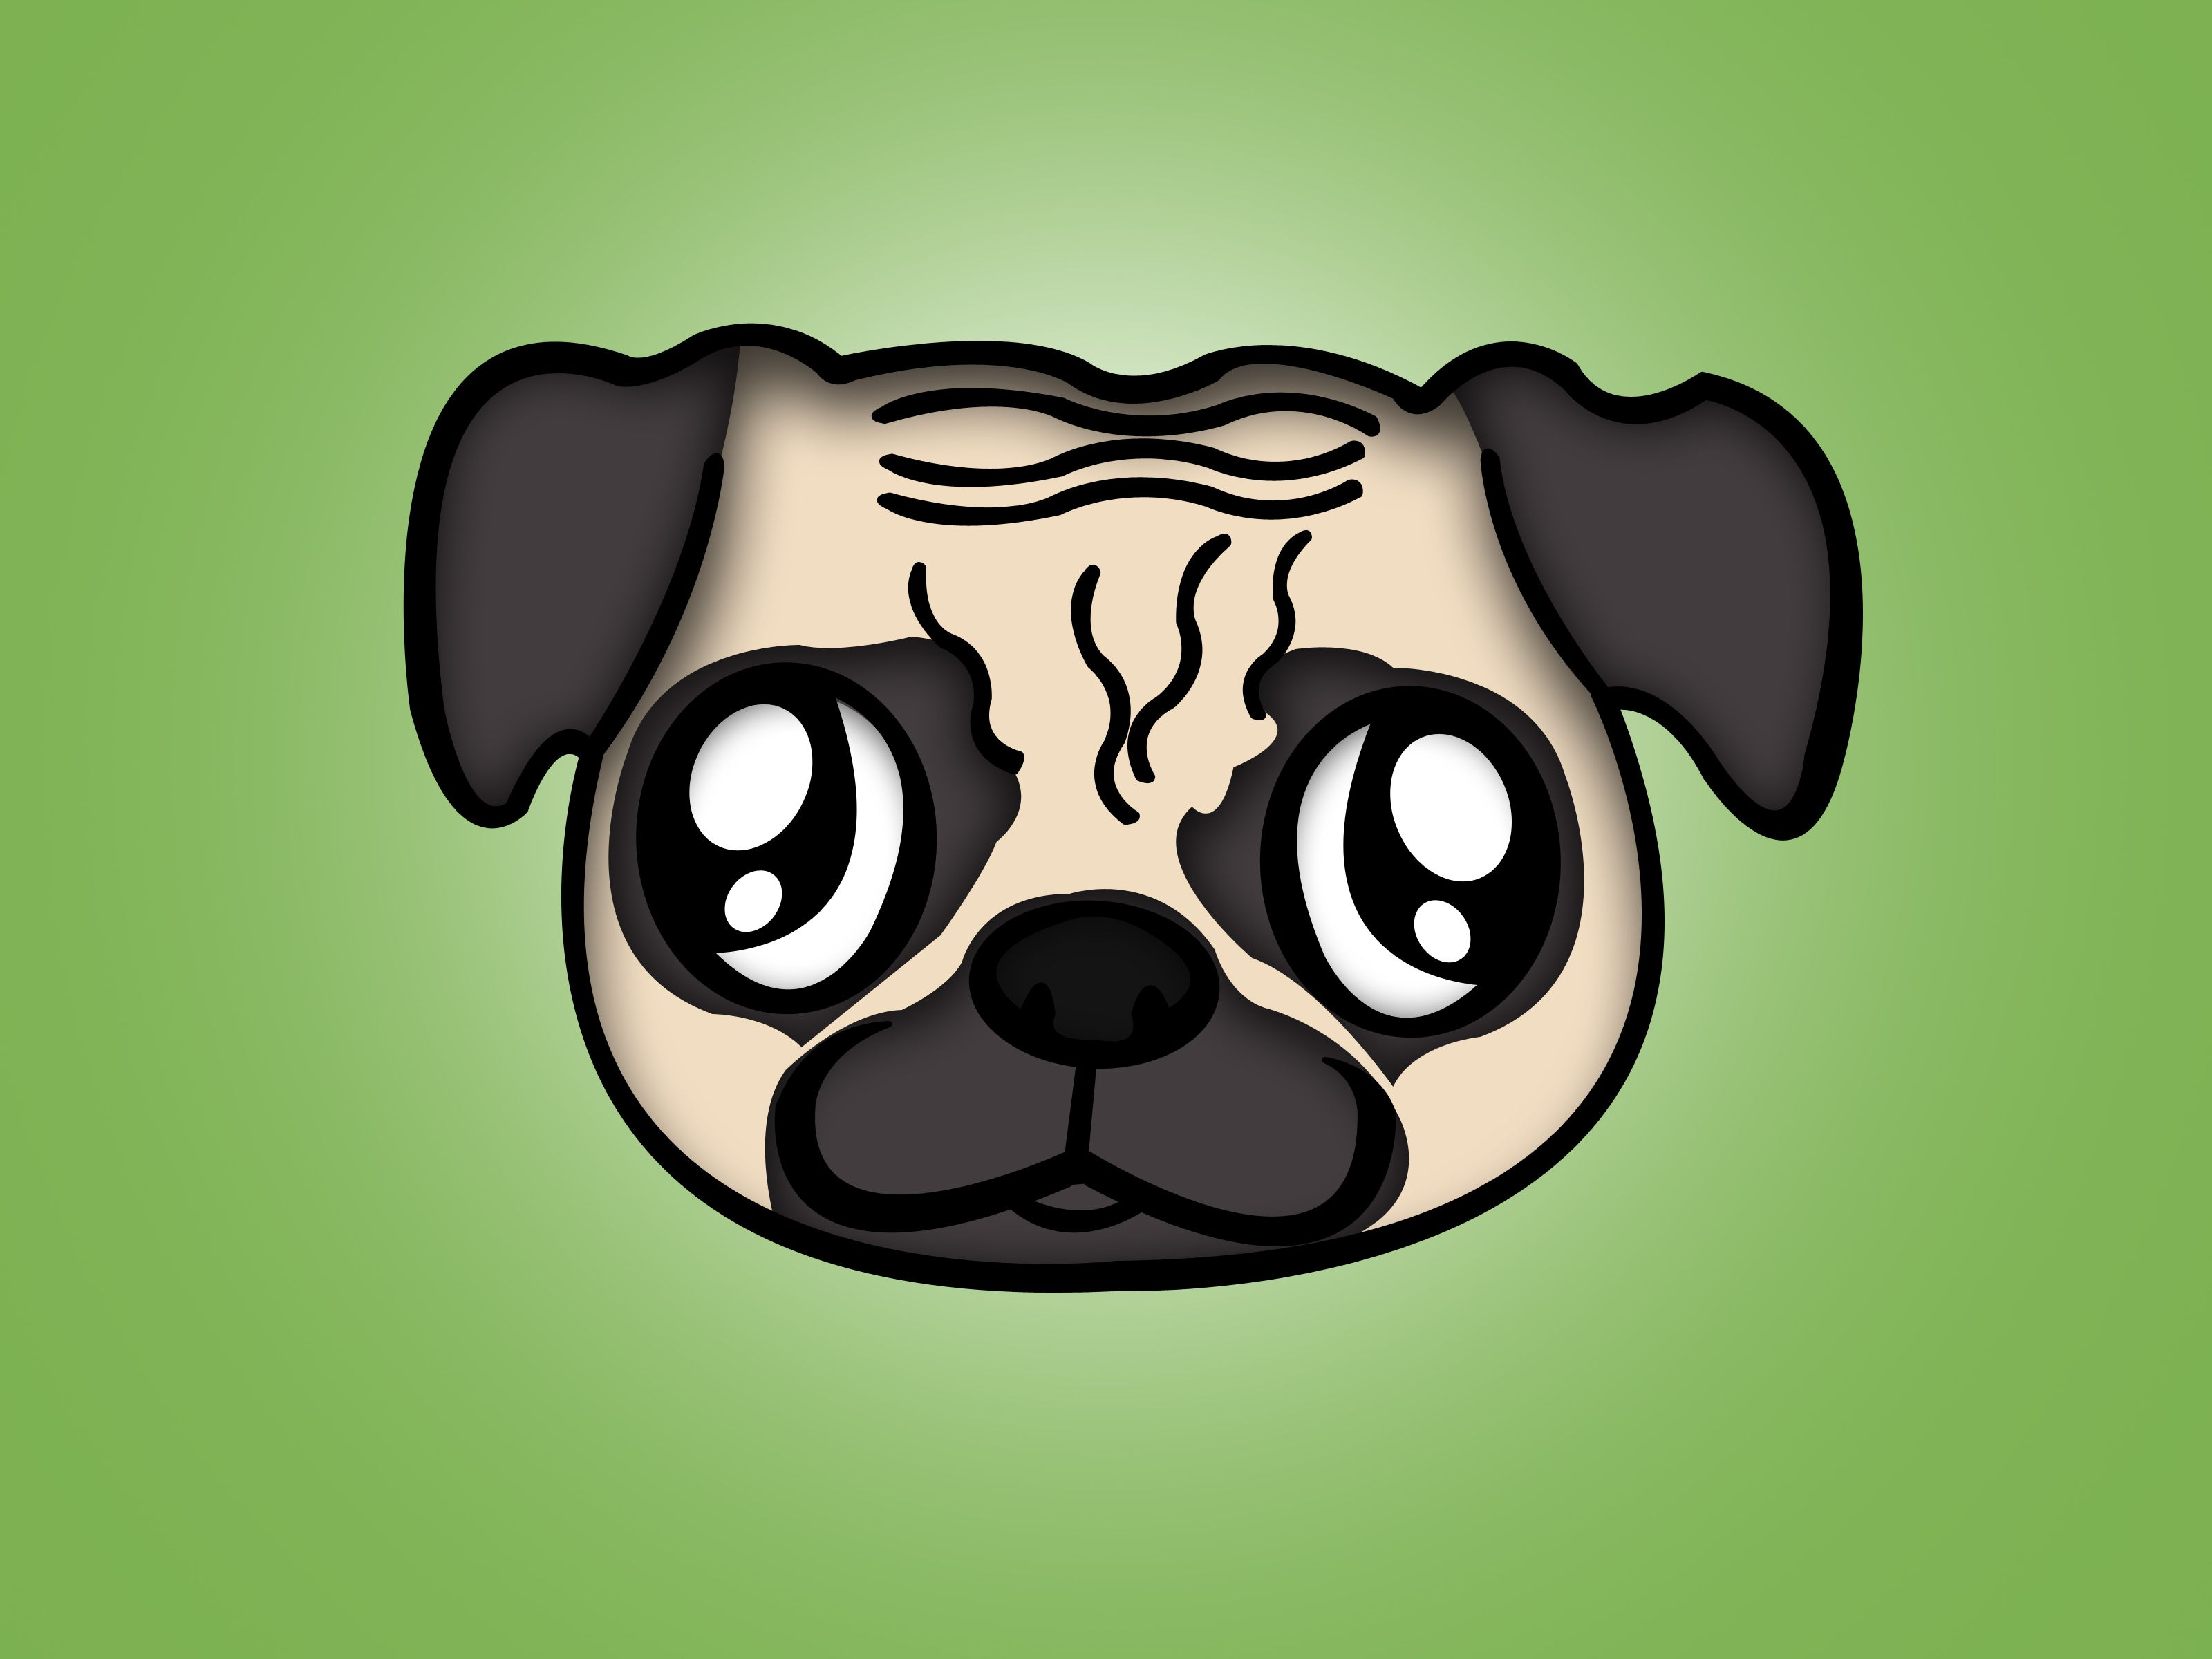 Draw A Pug Cute Puppies Cute Dogs Anime Puppy